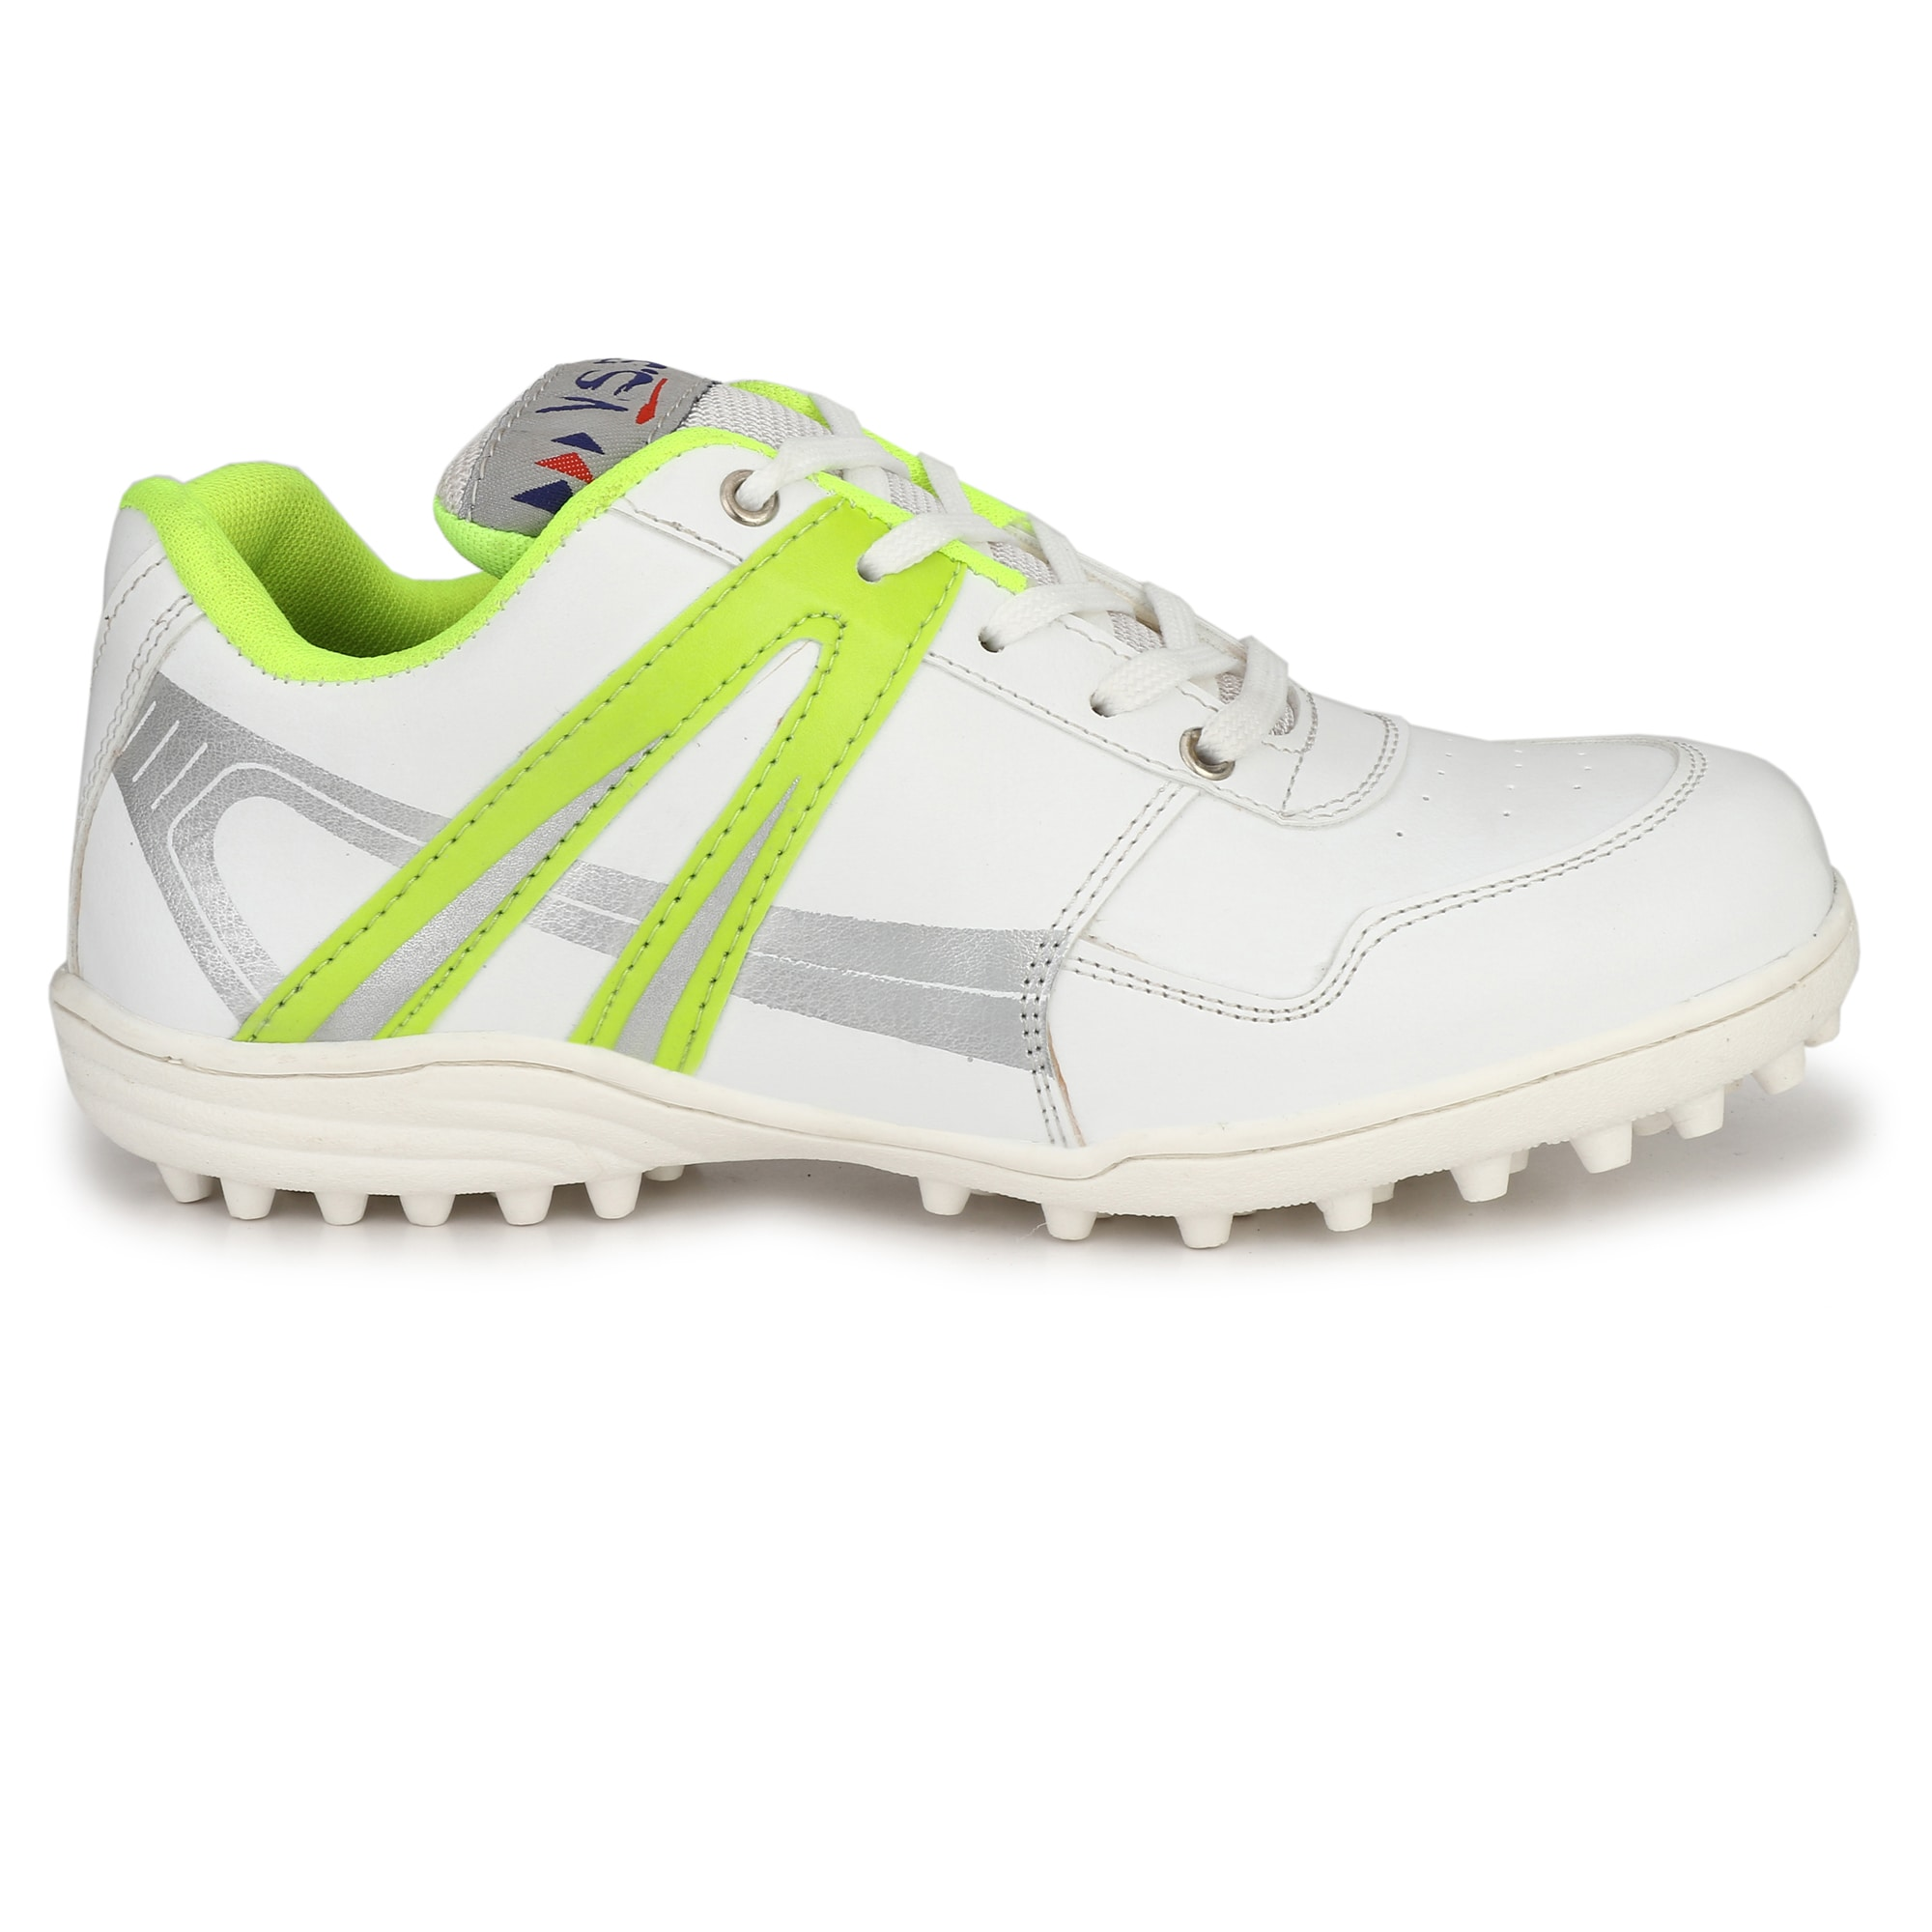 VSS Men's White Synthetic Leather Cricket Sports Shoes BCK046-WHITE (White,6-11,8 PAIR)